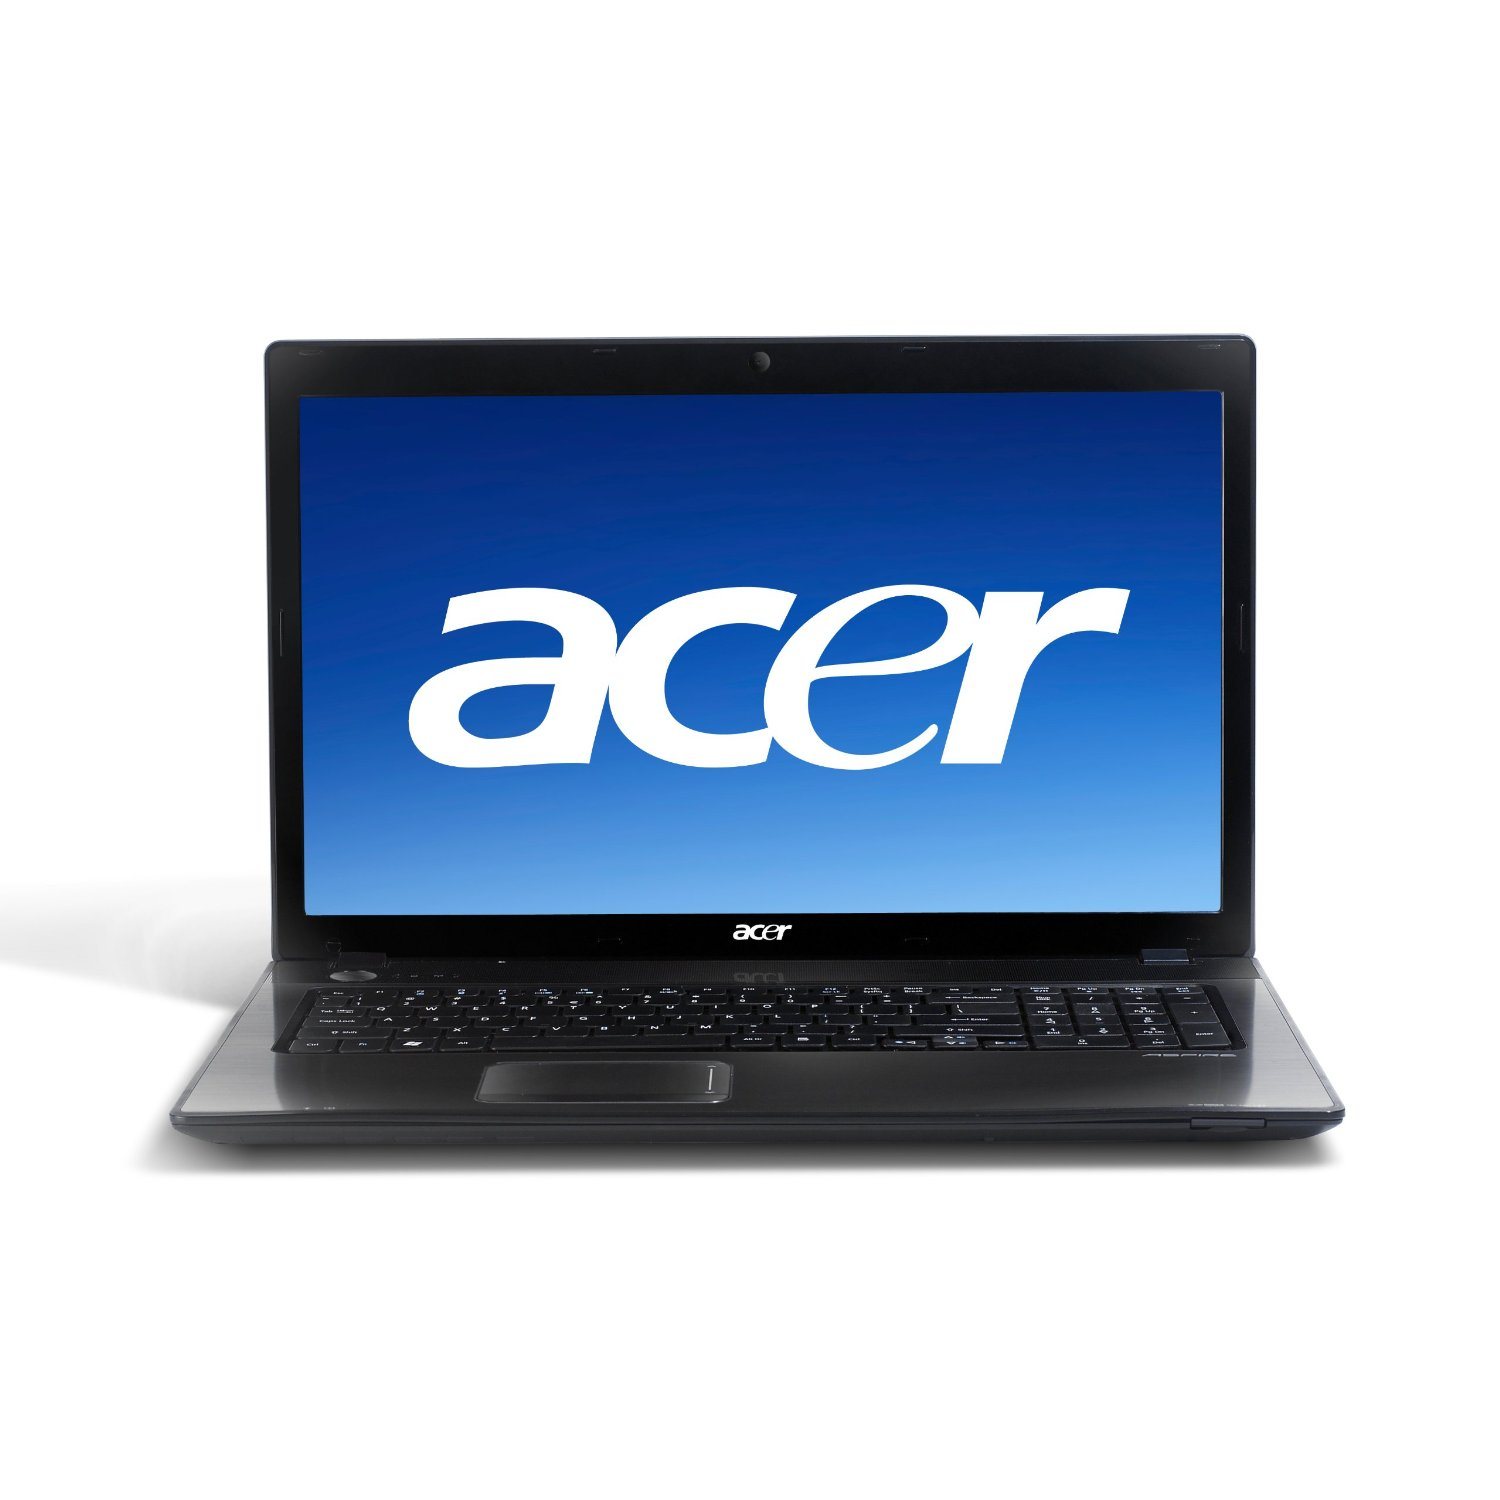 Acer Aspire AS742-6682 2.4GHz 320GB 16-inch Laptop (Refurbished)